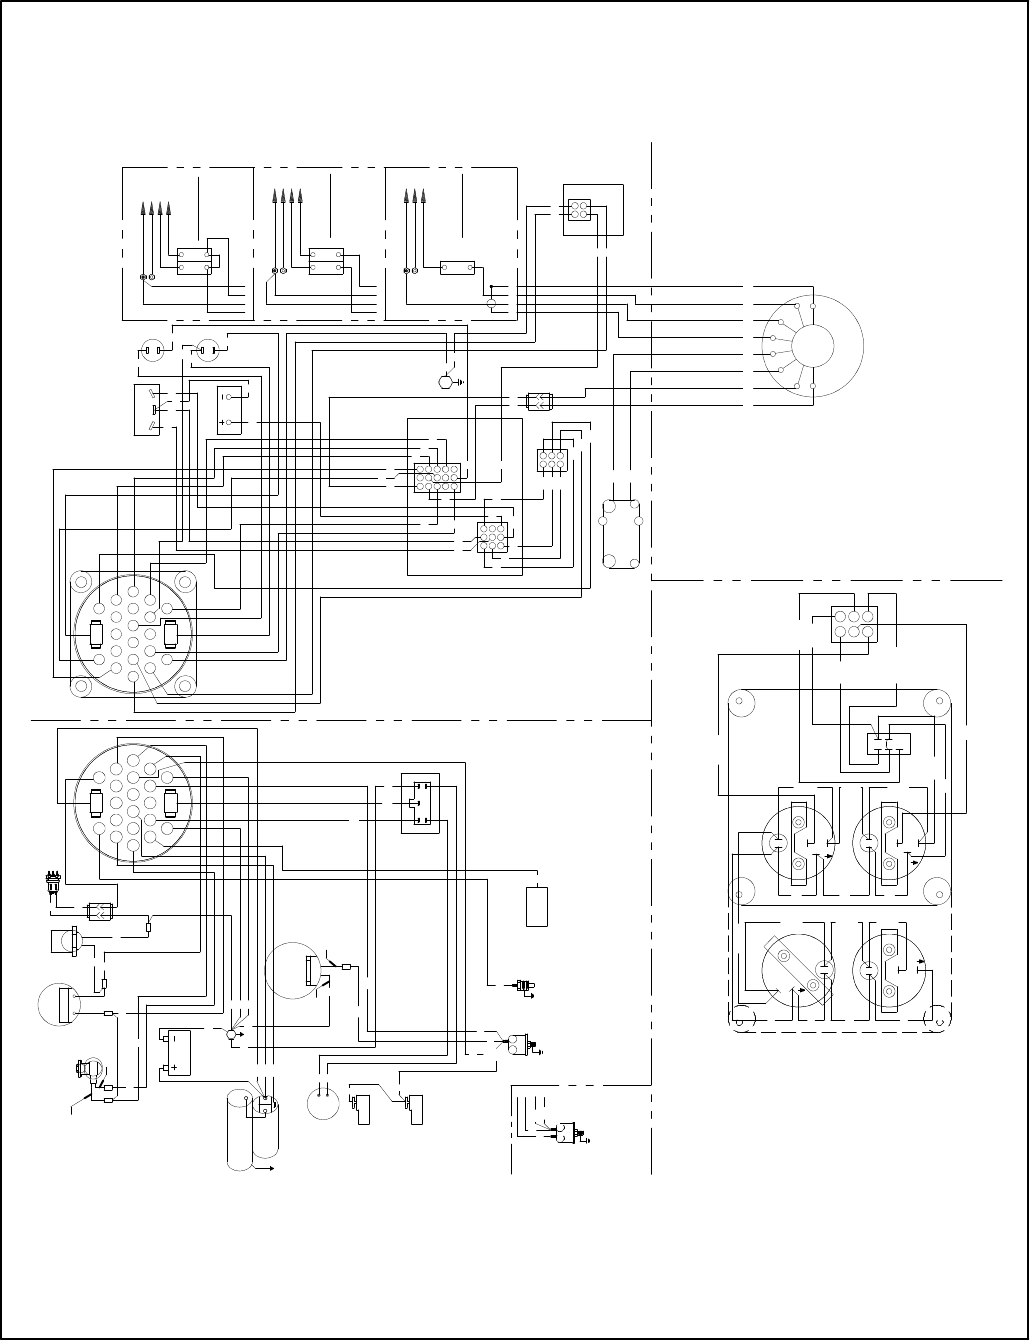 Cadillac Escalade Tail Light Wiring Diagram